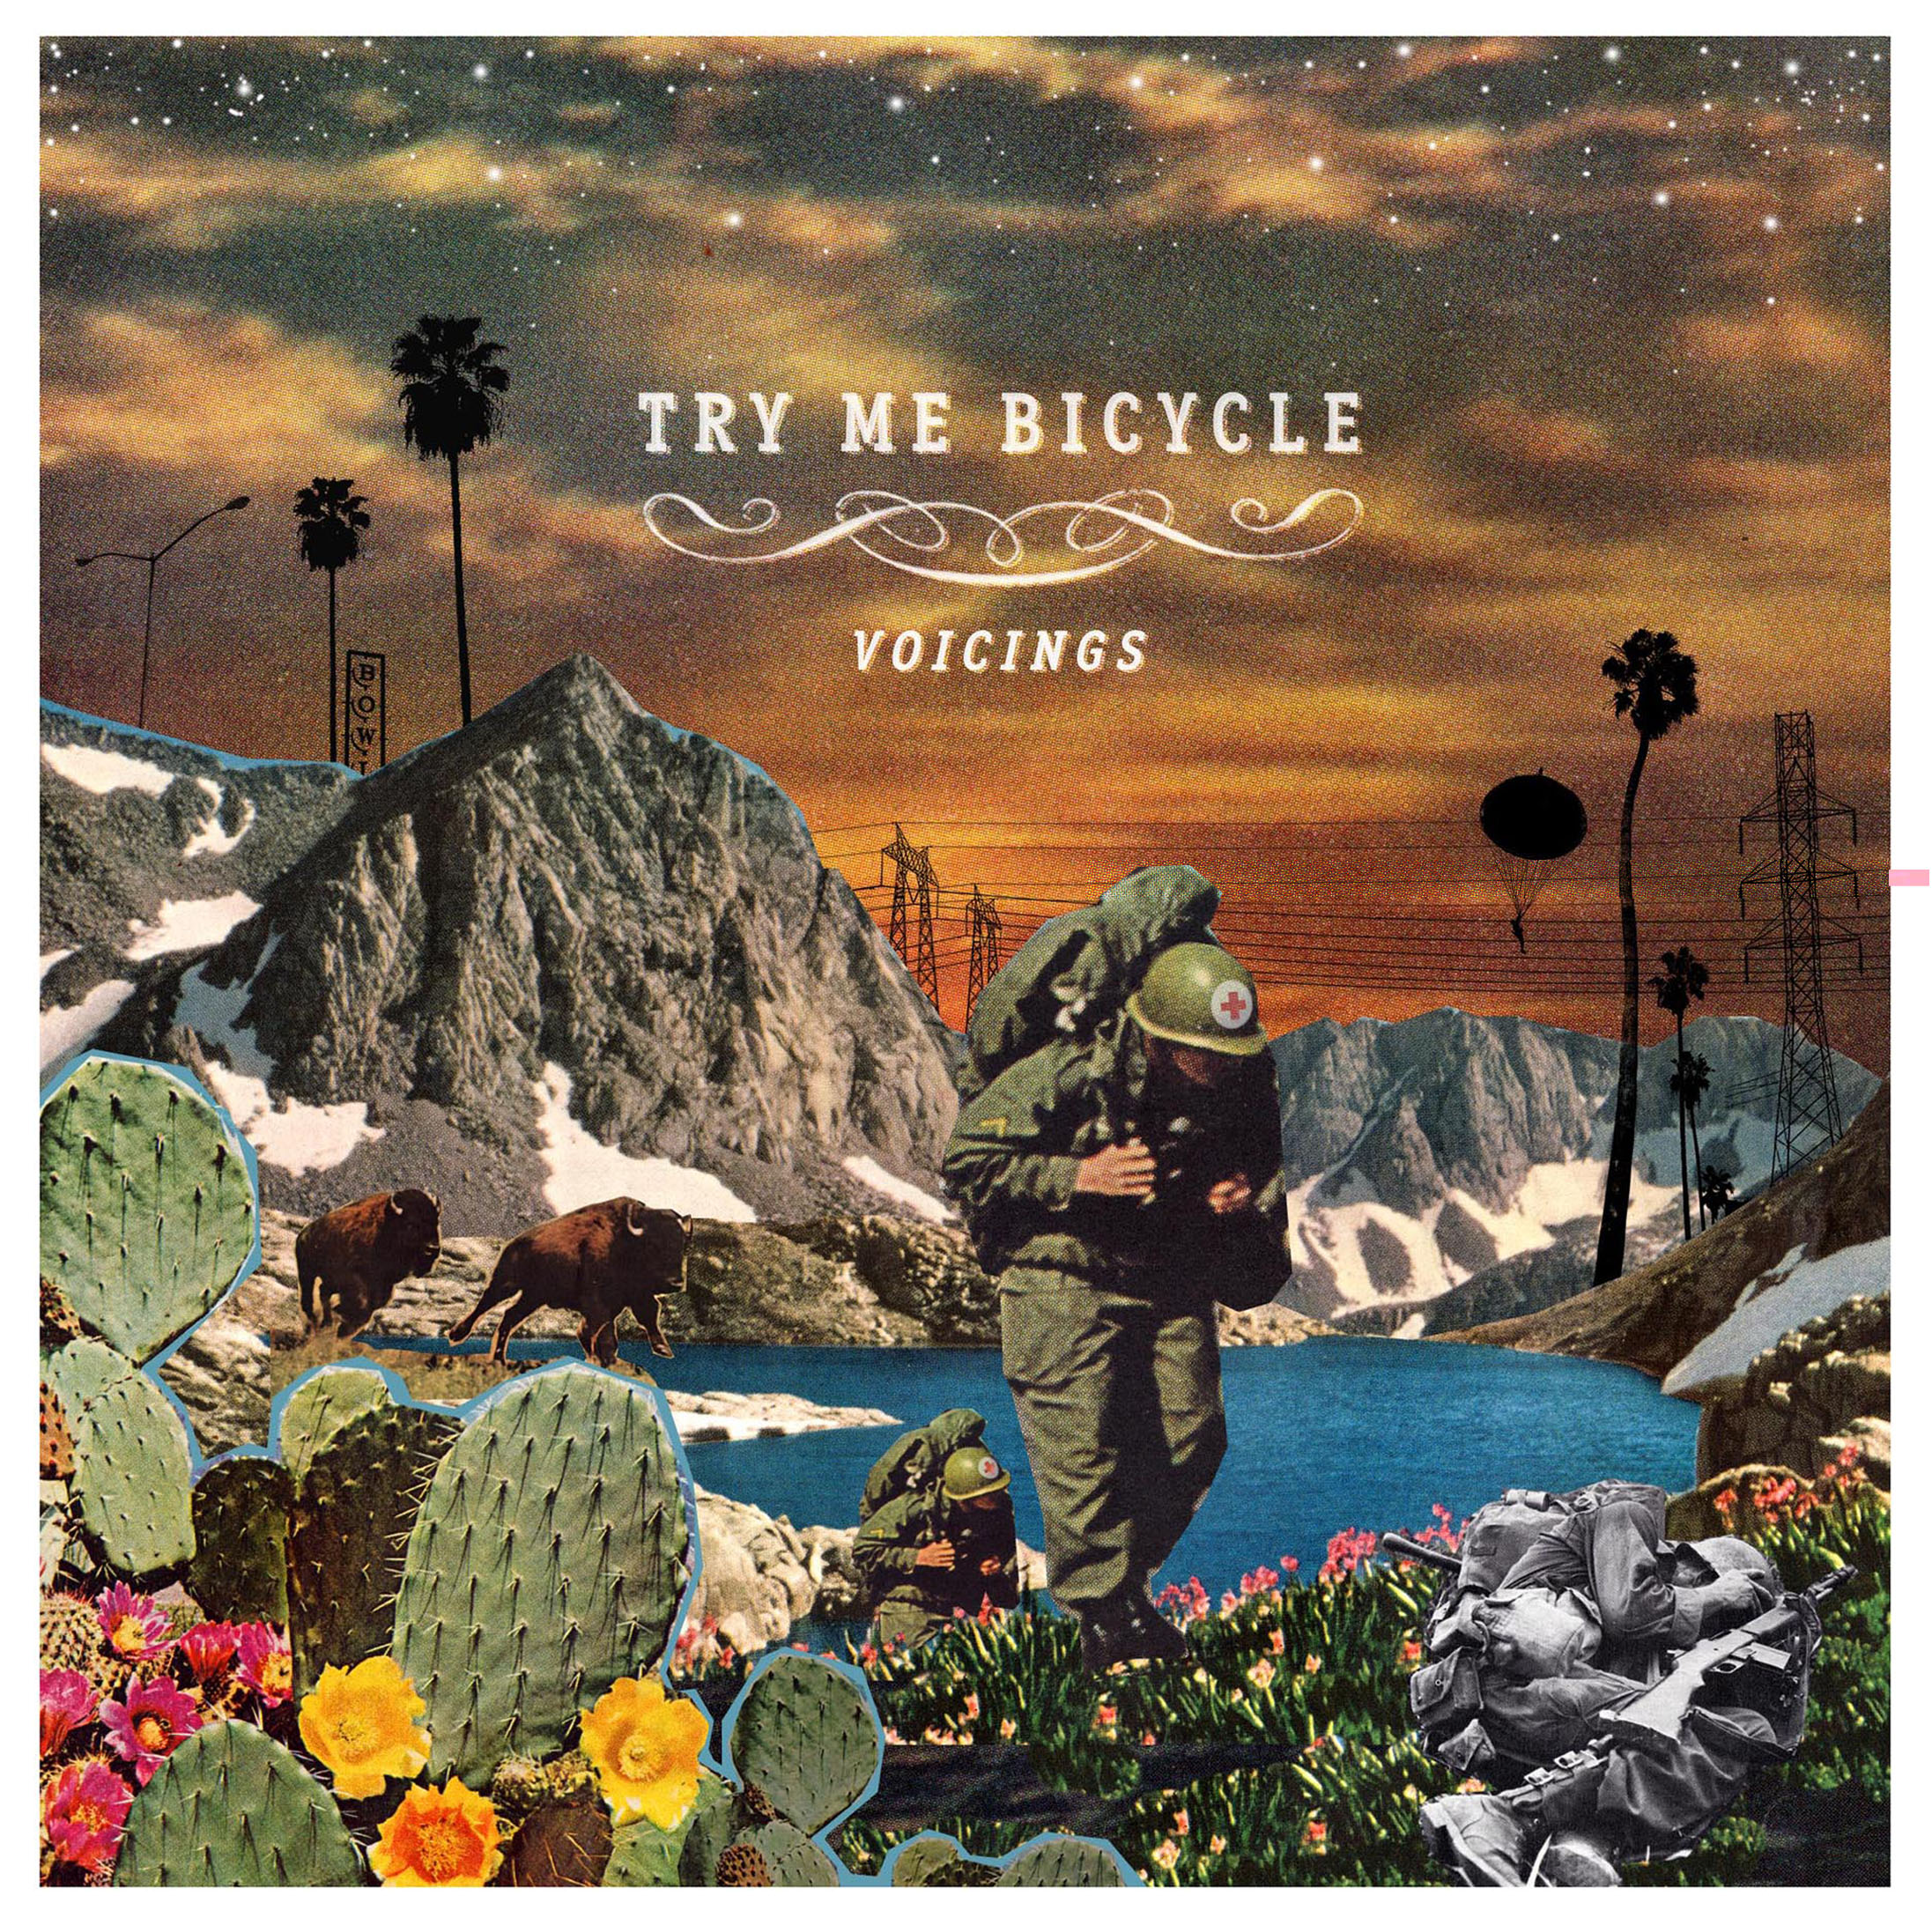 TRY ME BICYCLE COVER.jpg